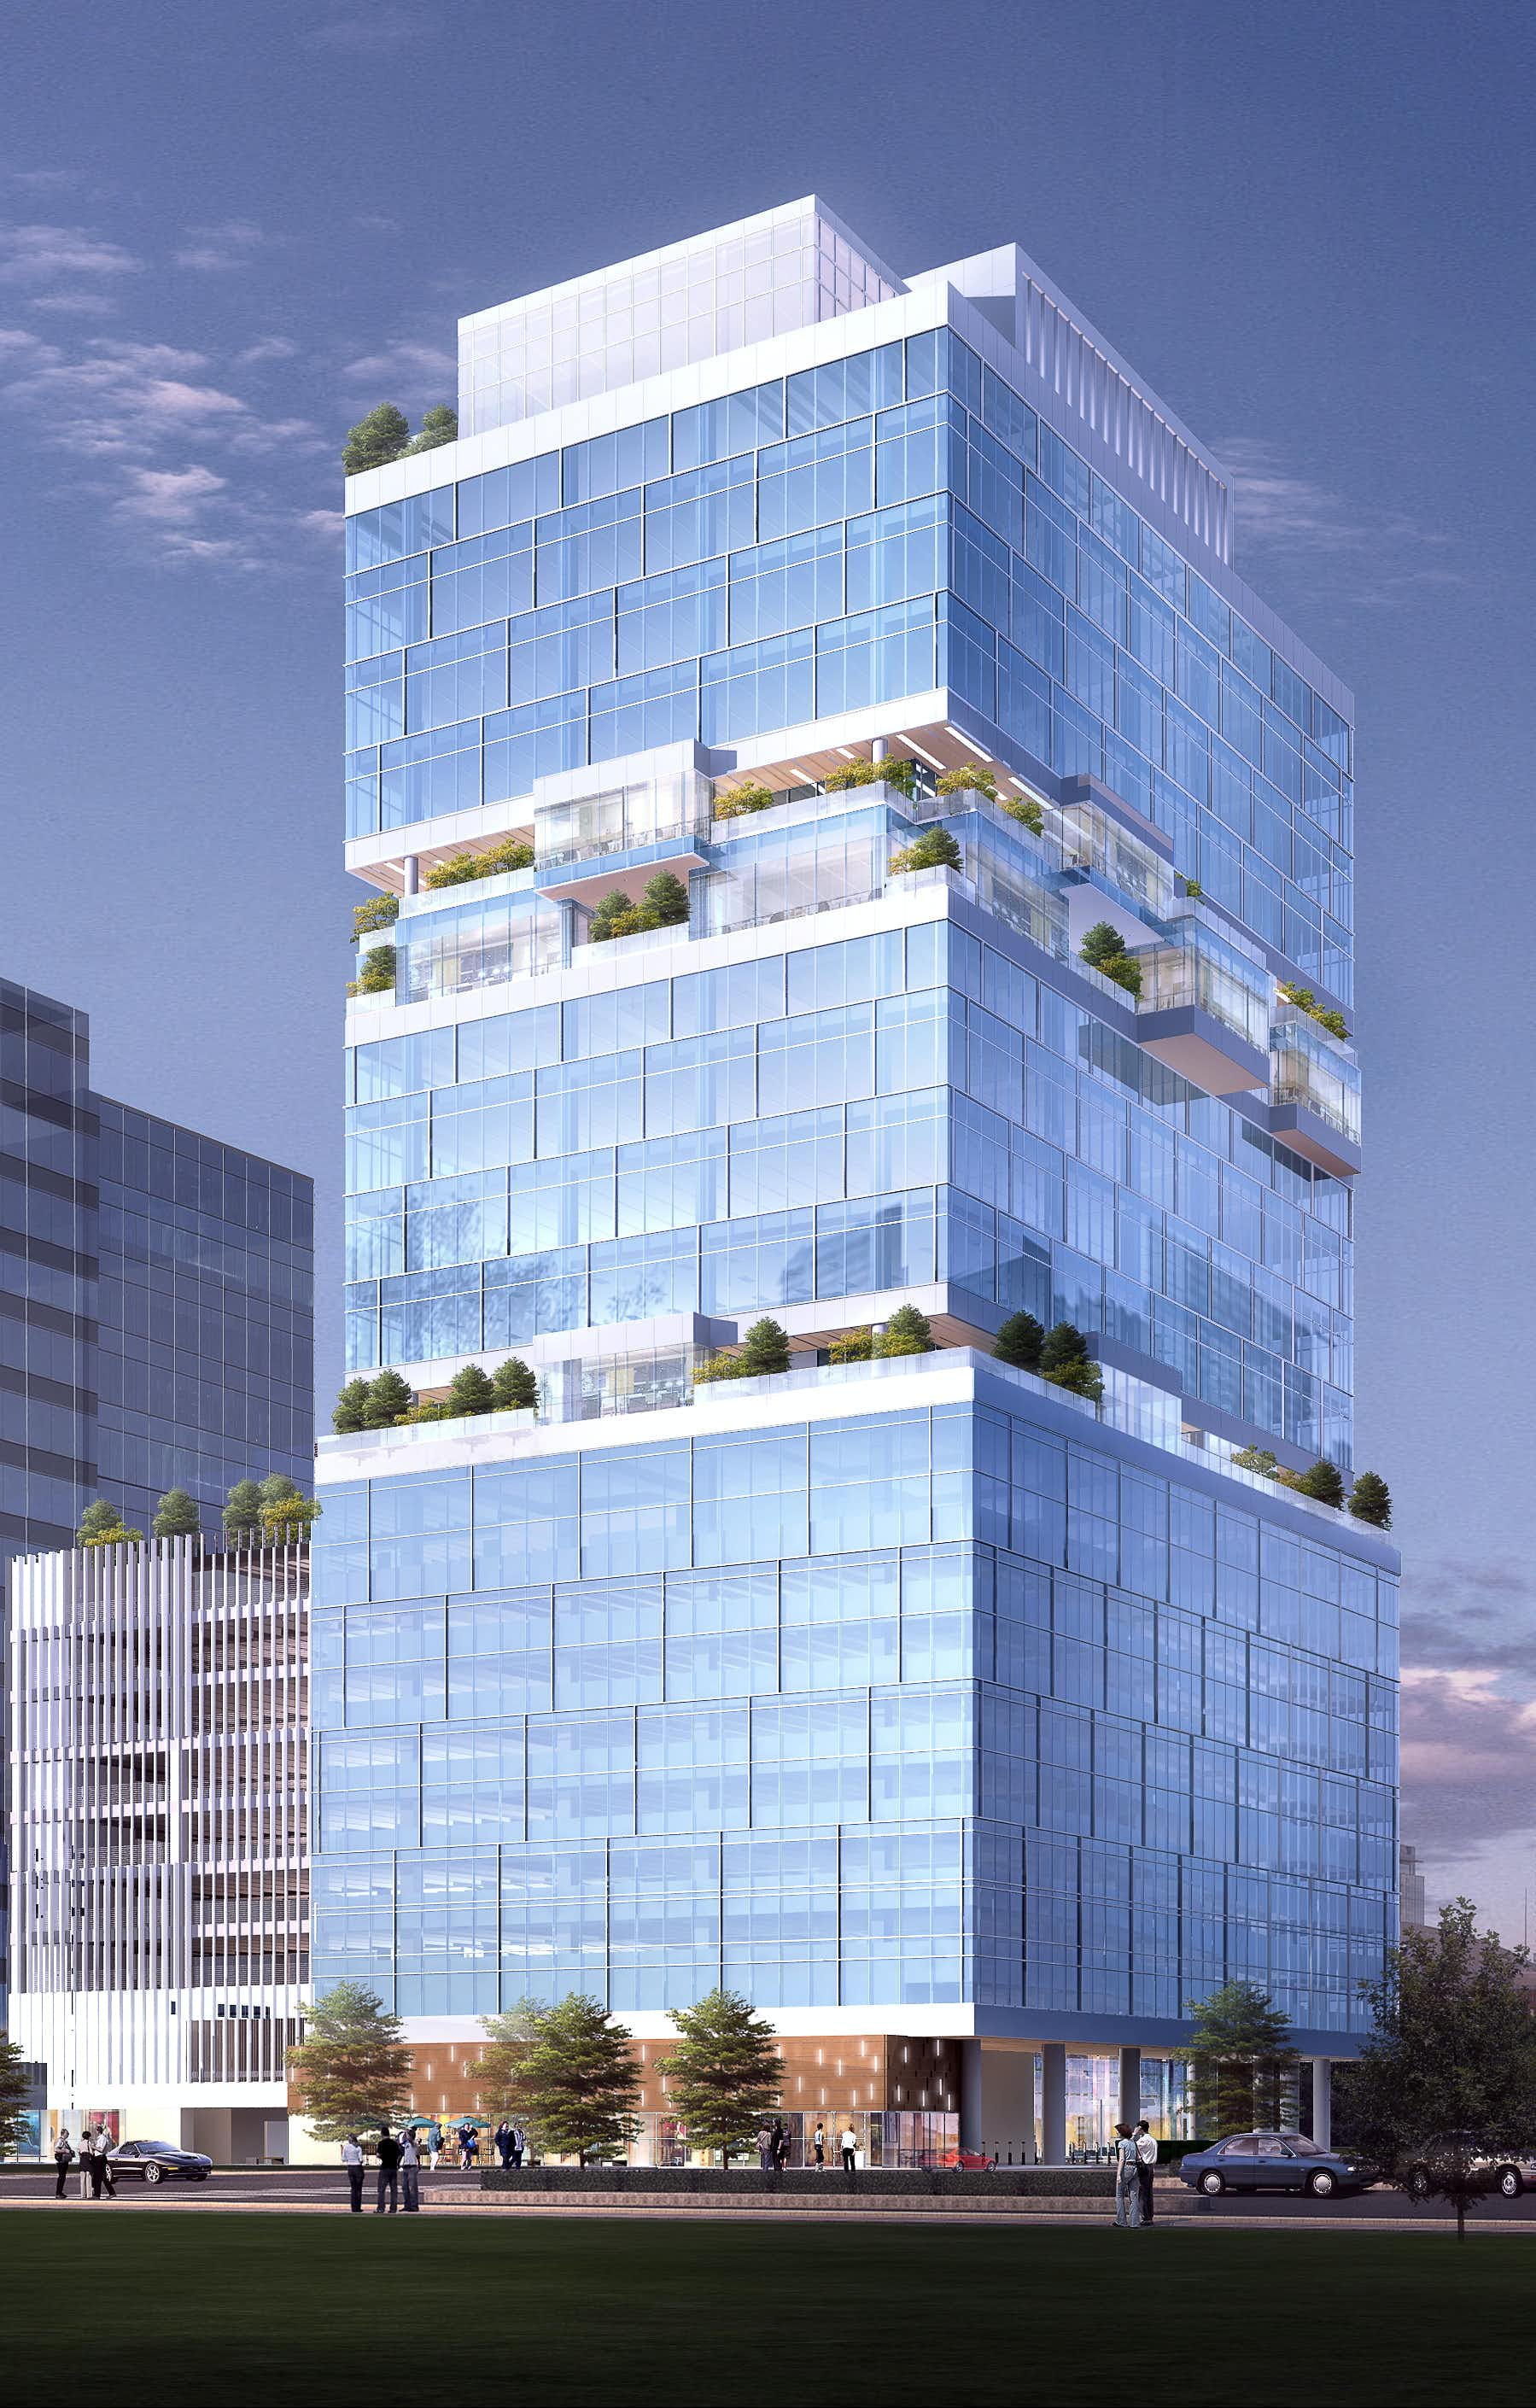 The 22-story Harwood No. 10 building will open in 2018 on McKinnon Street north of downtown. (Harwood International)